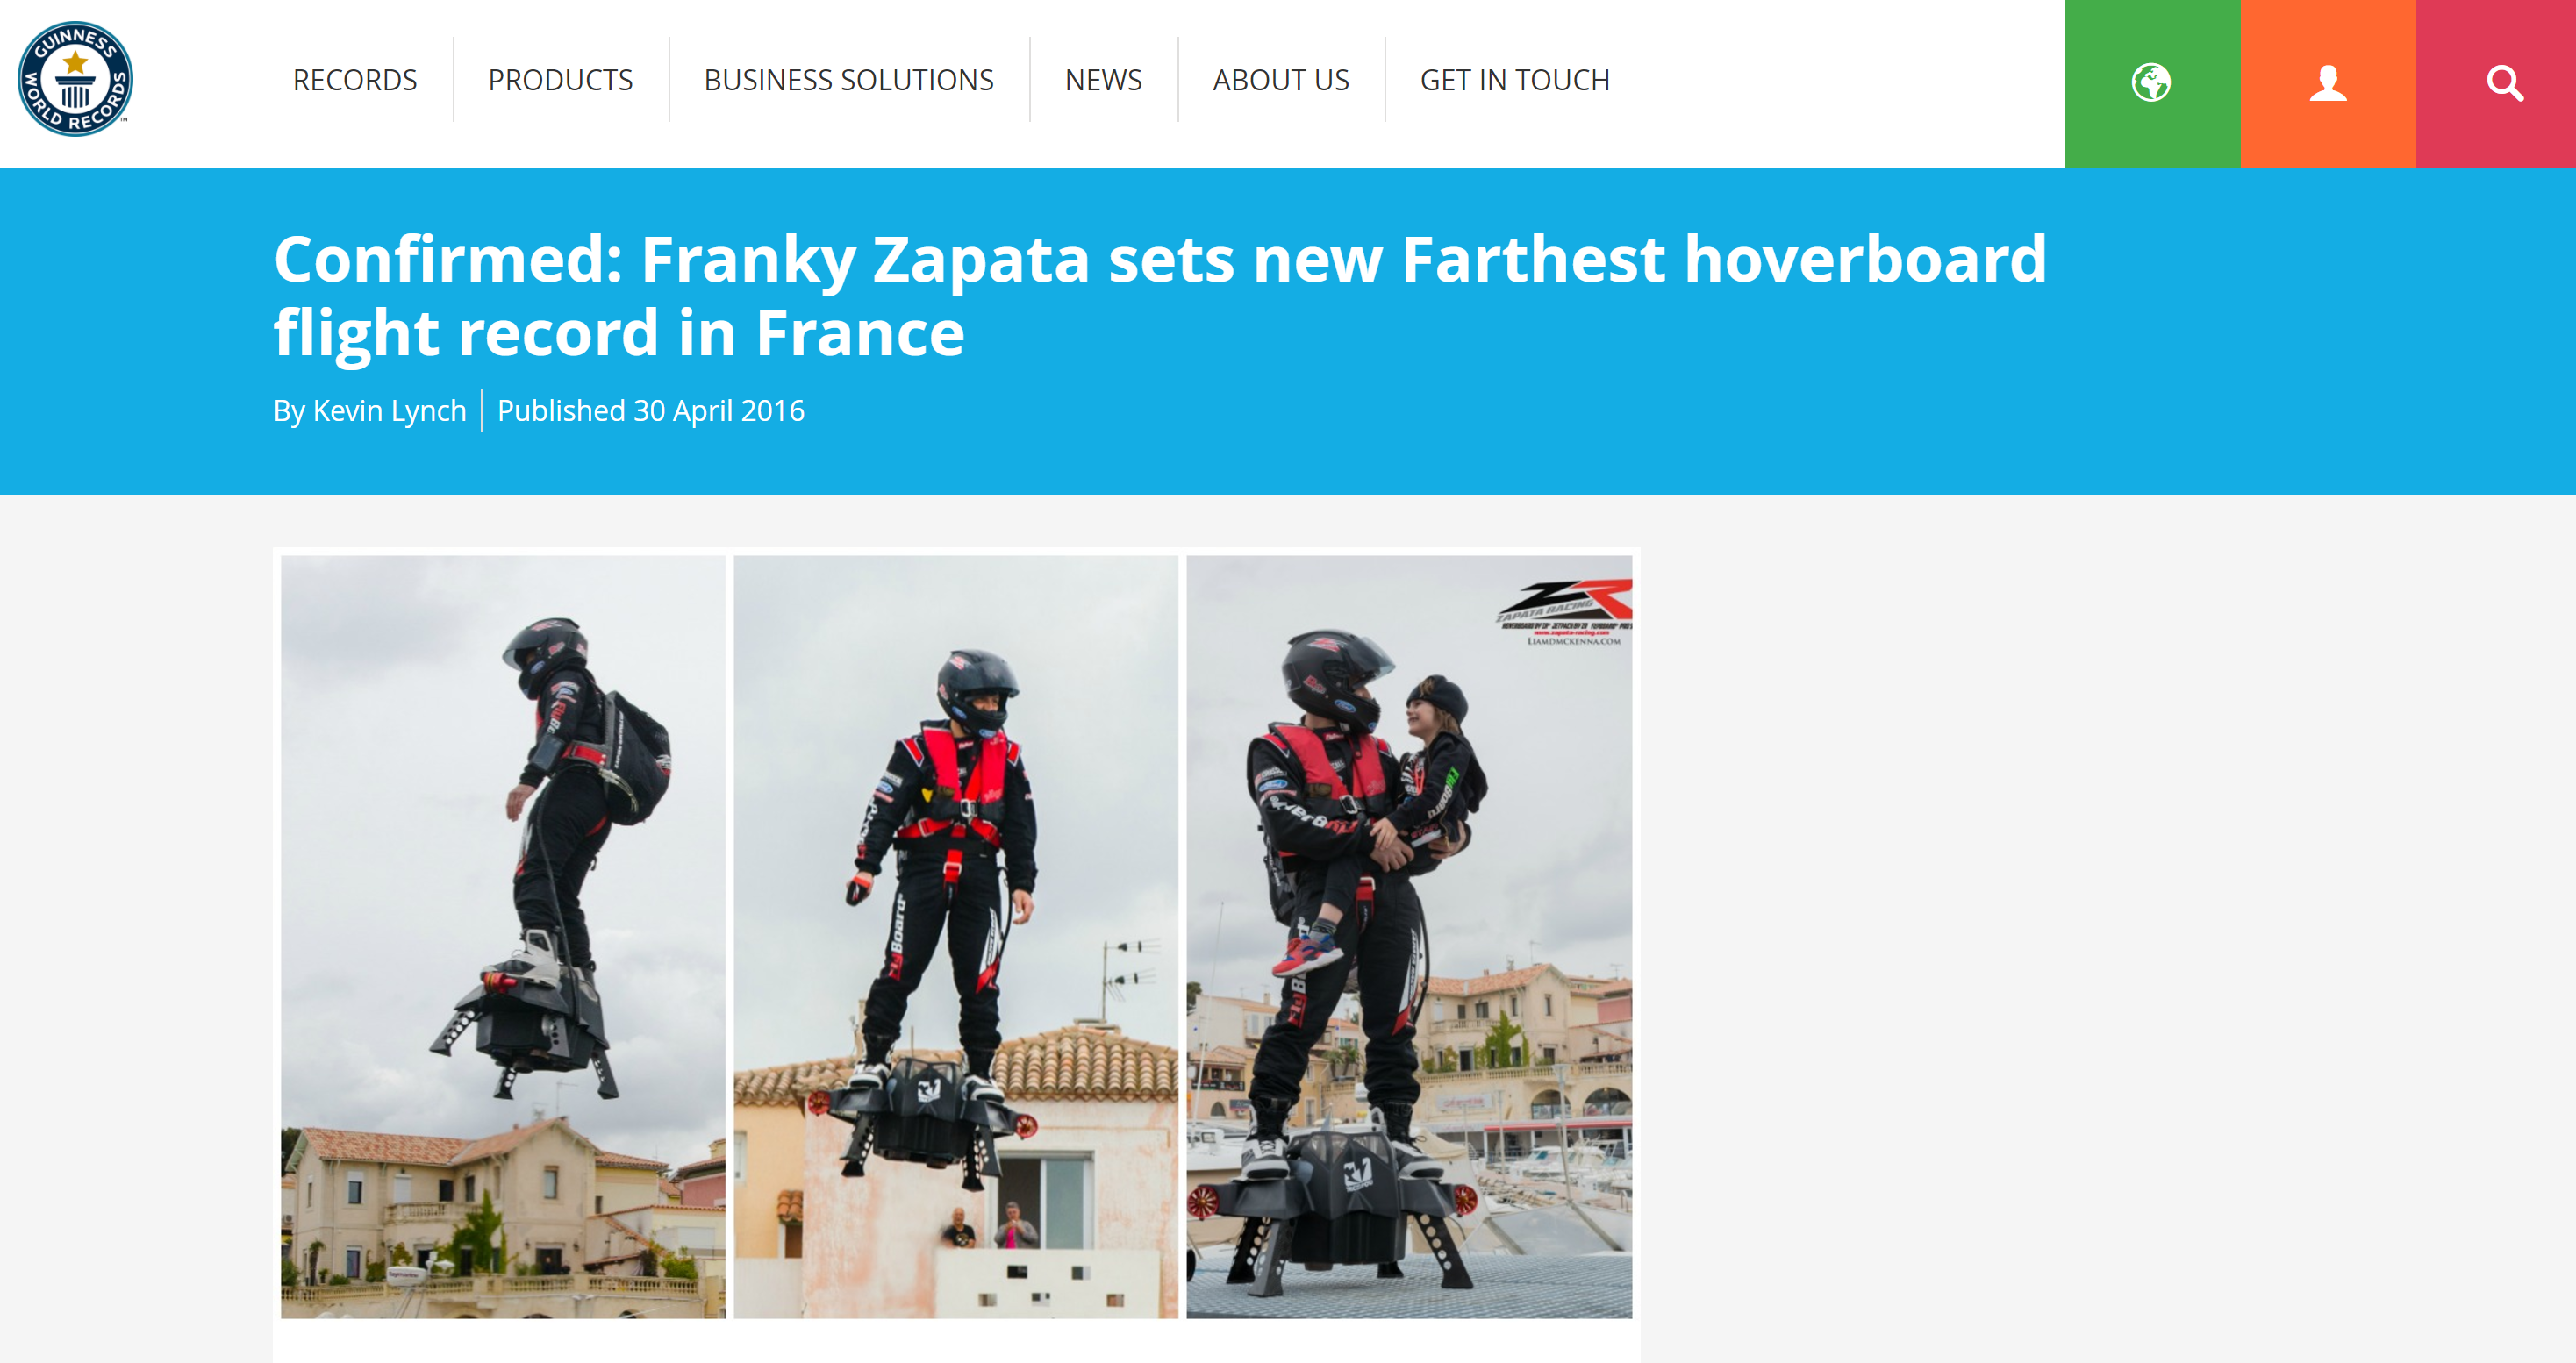 FireShot Capture 6 - Confirmed_ Franky Zapata sets new Fart_ - http___www.guinnessworldrecords.com.png